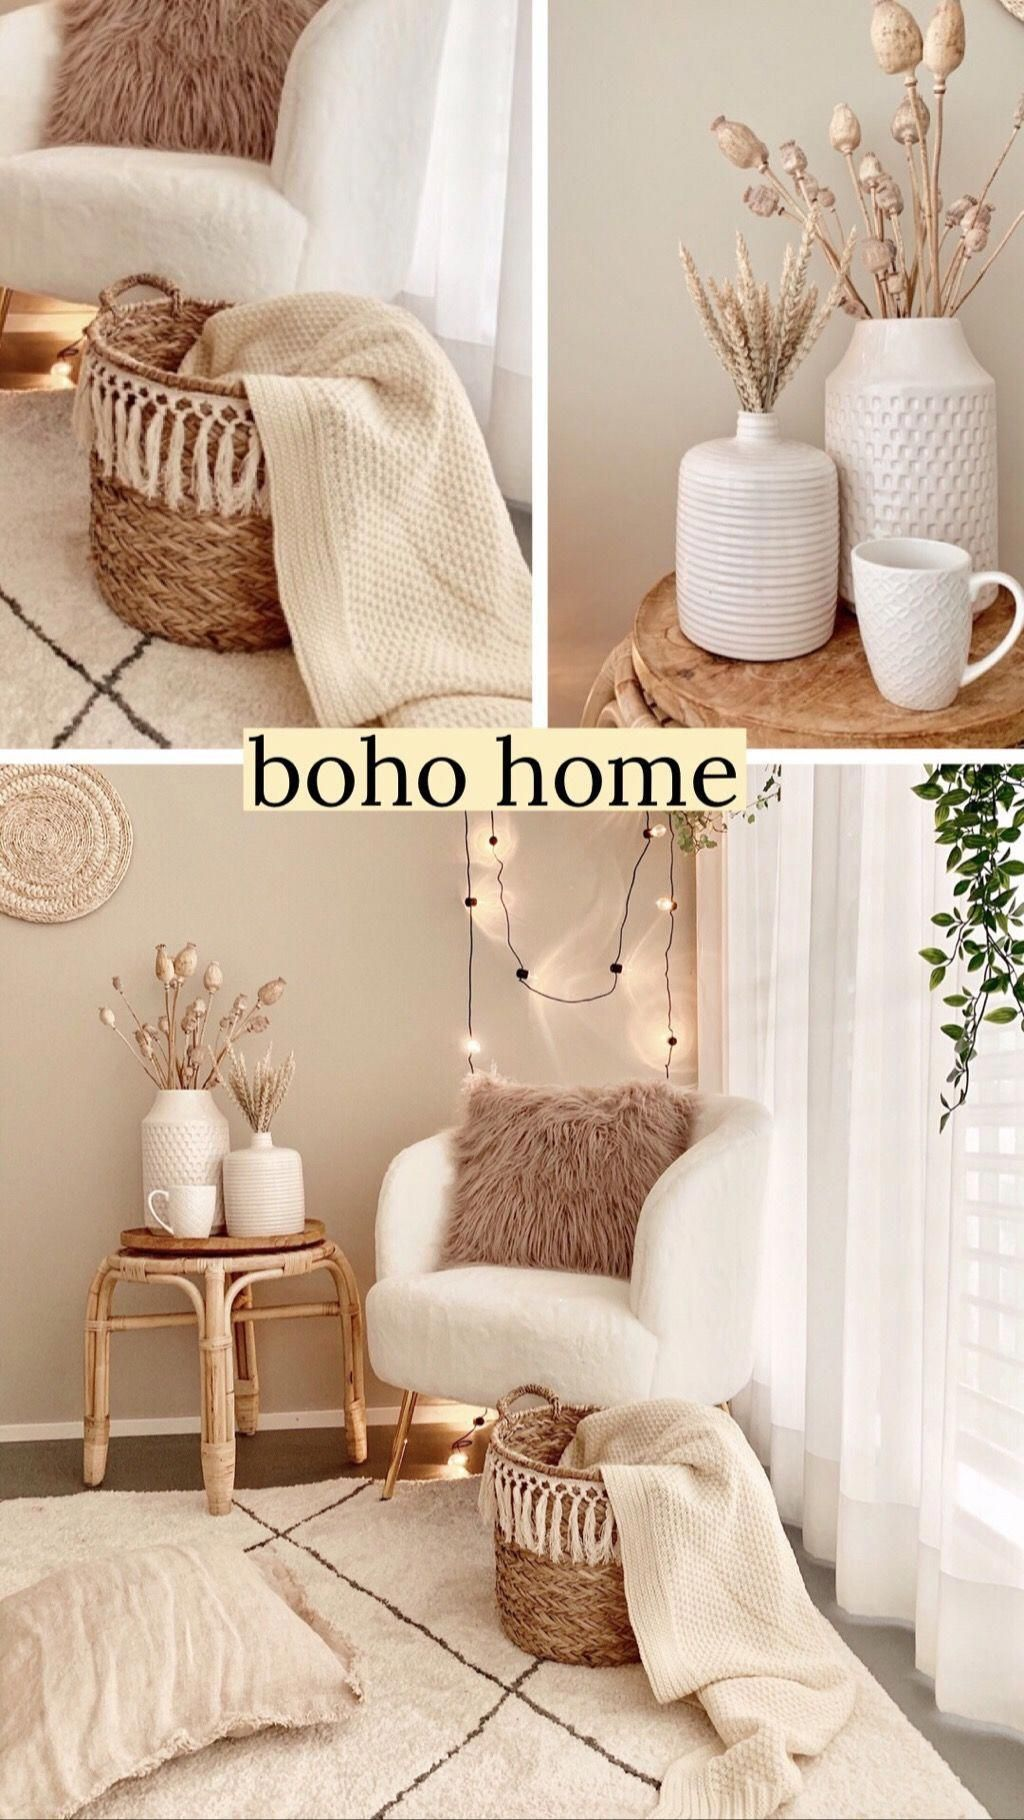 Diy Home Decor Compilation On Vibrant Solution To Take Action Now Planning Reference Number 9738511040 Doit Boho Bedroom Decor Home Decor Bedroom Room Decor